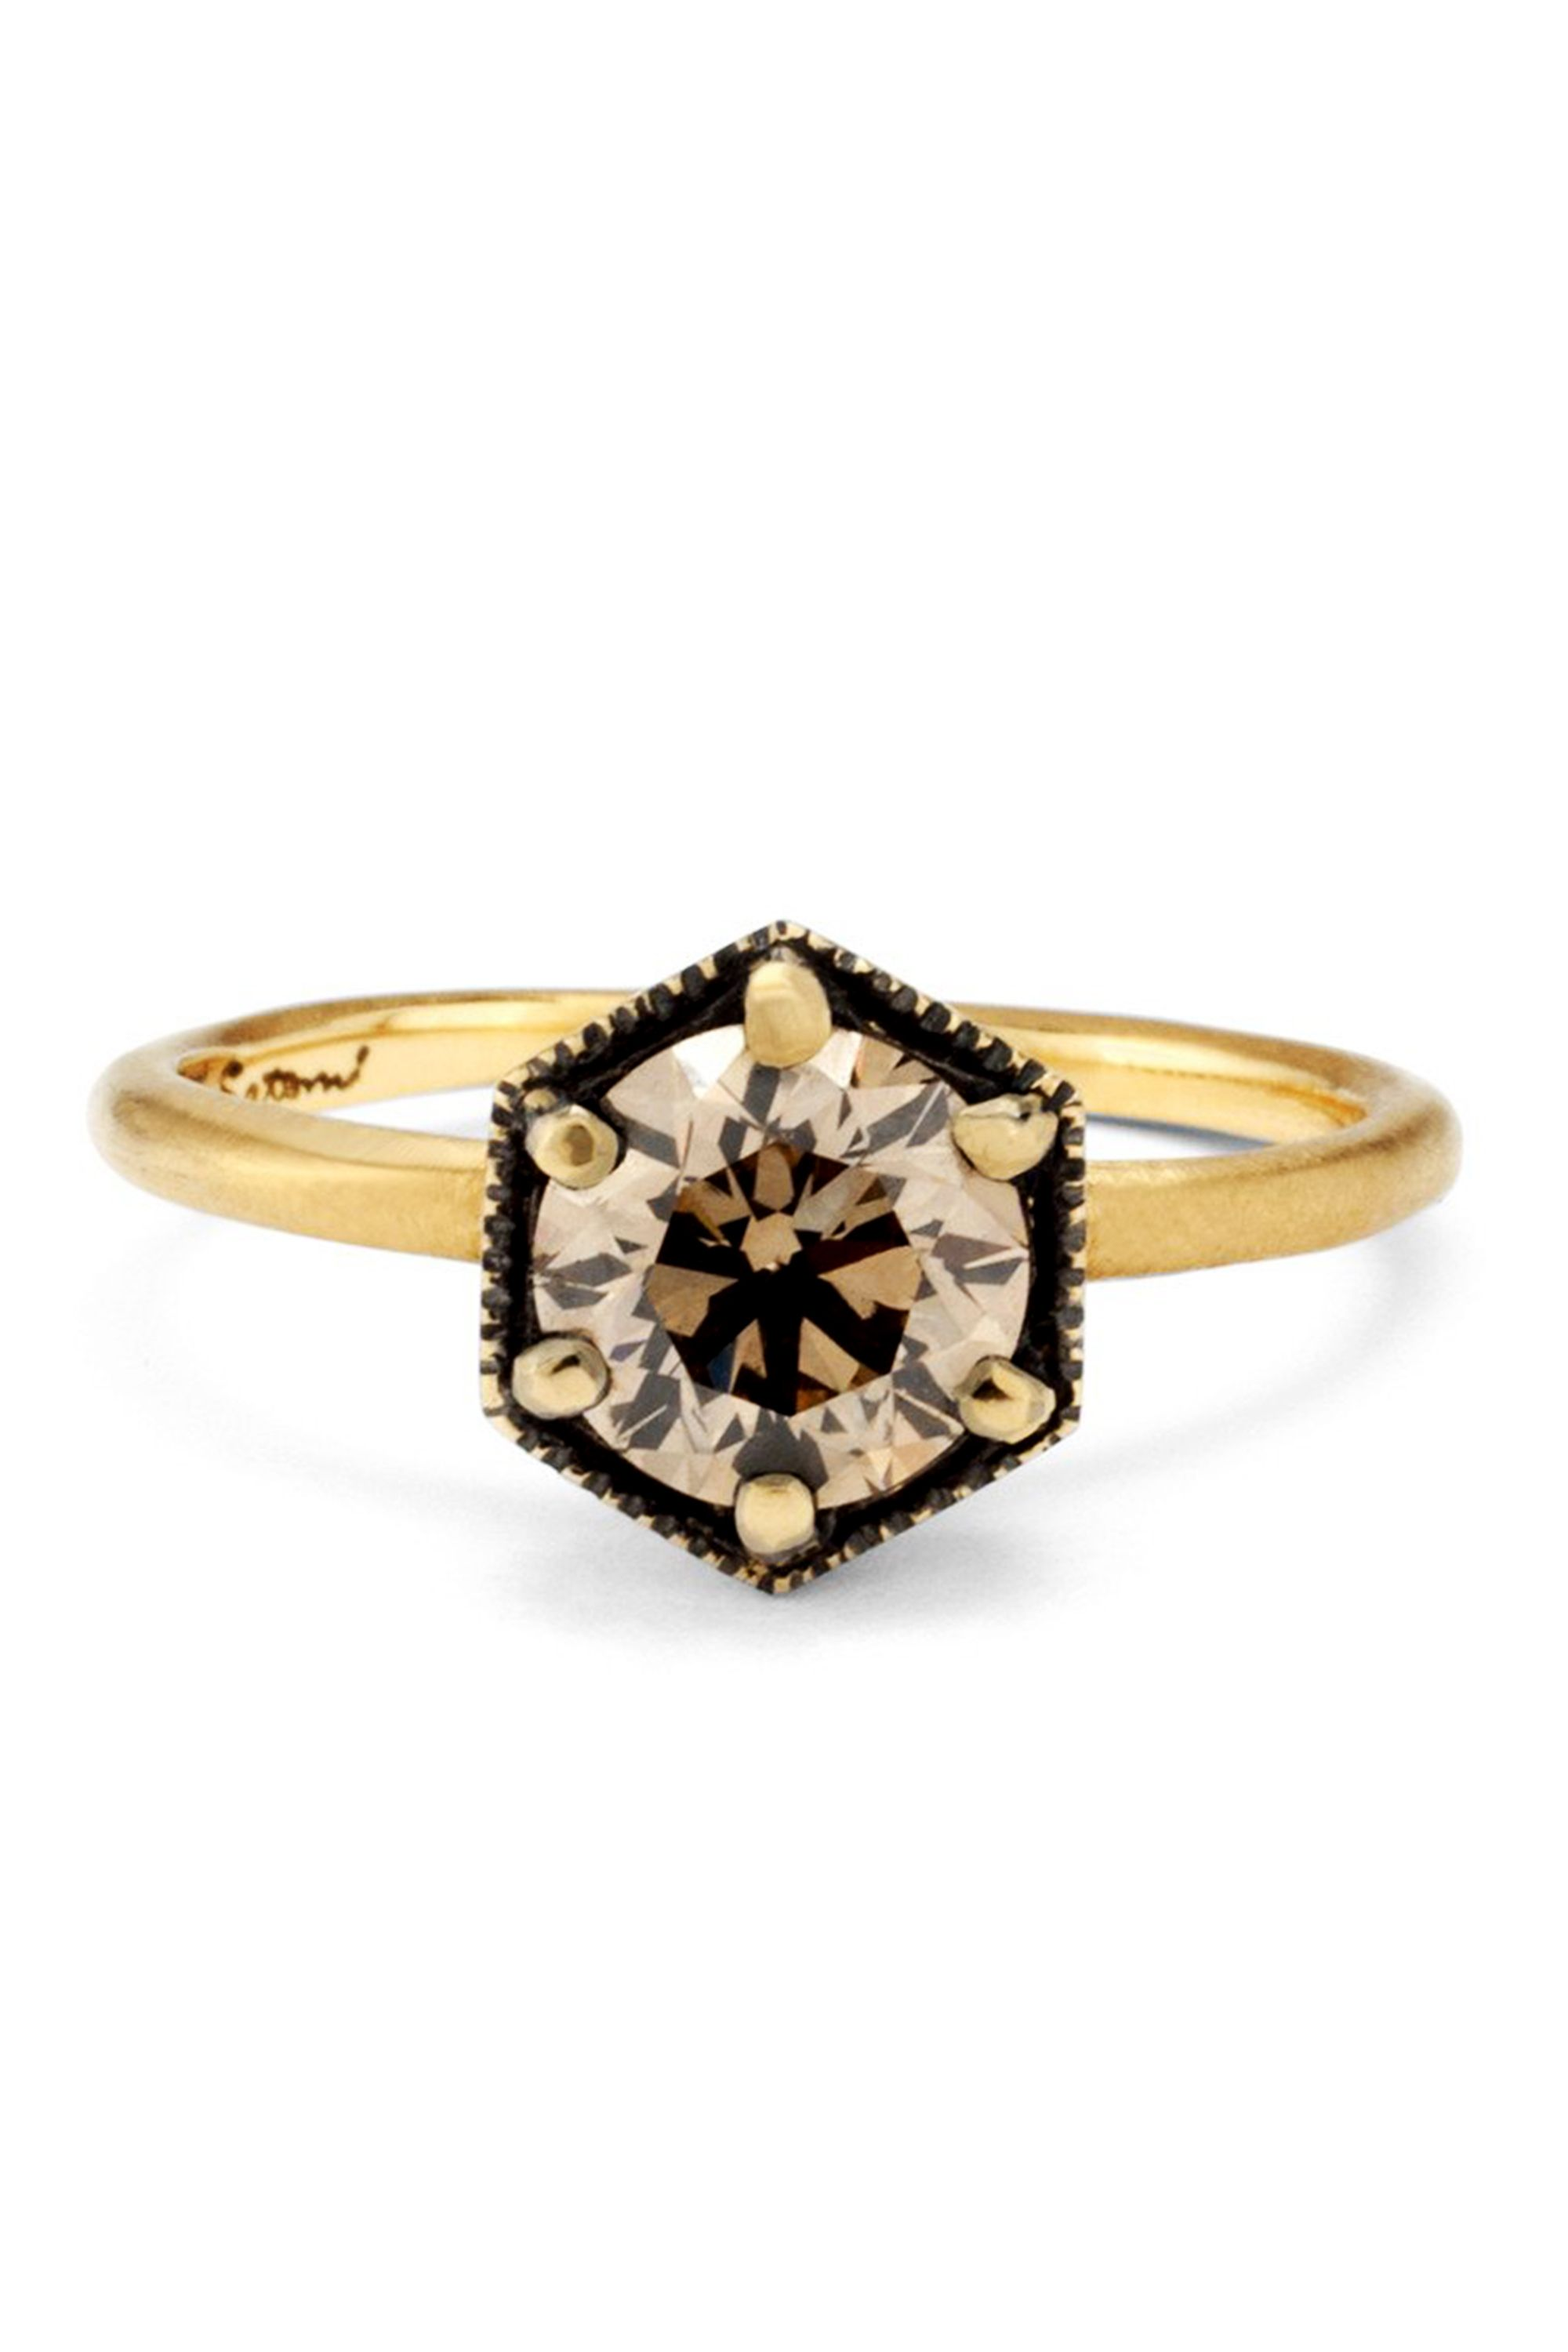 styles different rings diamond in cuts boxes cool unique gold ring inexpensive simple engagement